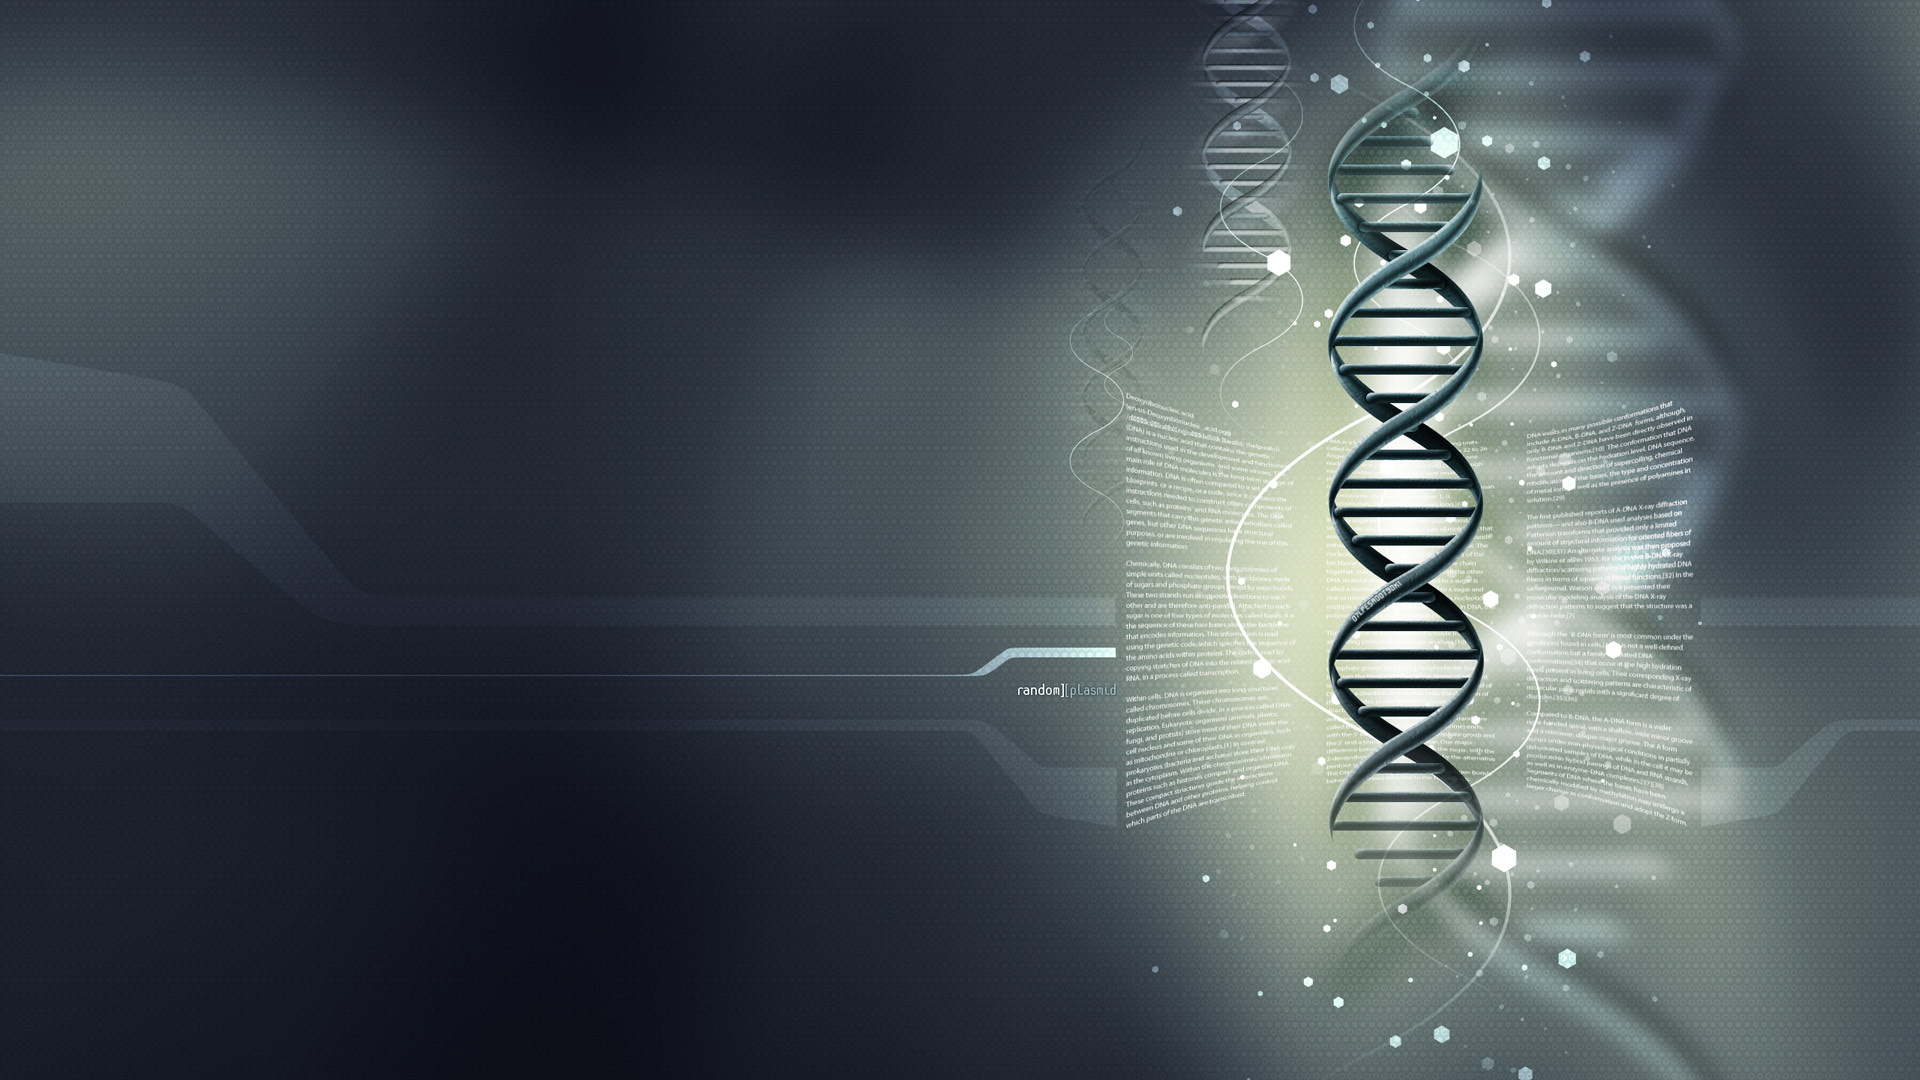 dna technology and crimes A solution to solving decades-old cold cases is on the rise, and it involves using a new analysis of dna evidence a company called parabon, along with genealogists, are using a database, whose founders had no intention of having their data used to solve crimes.